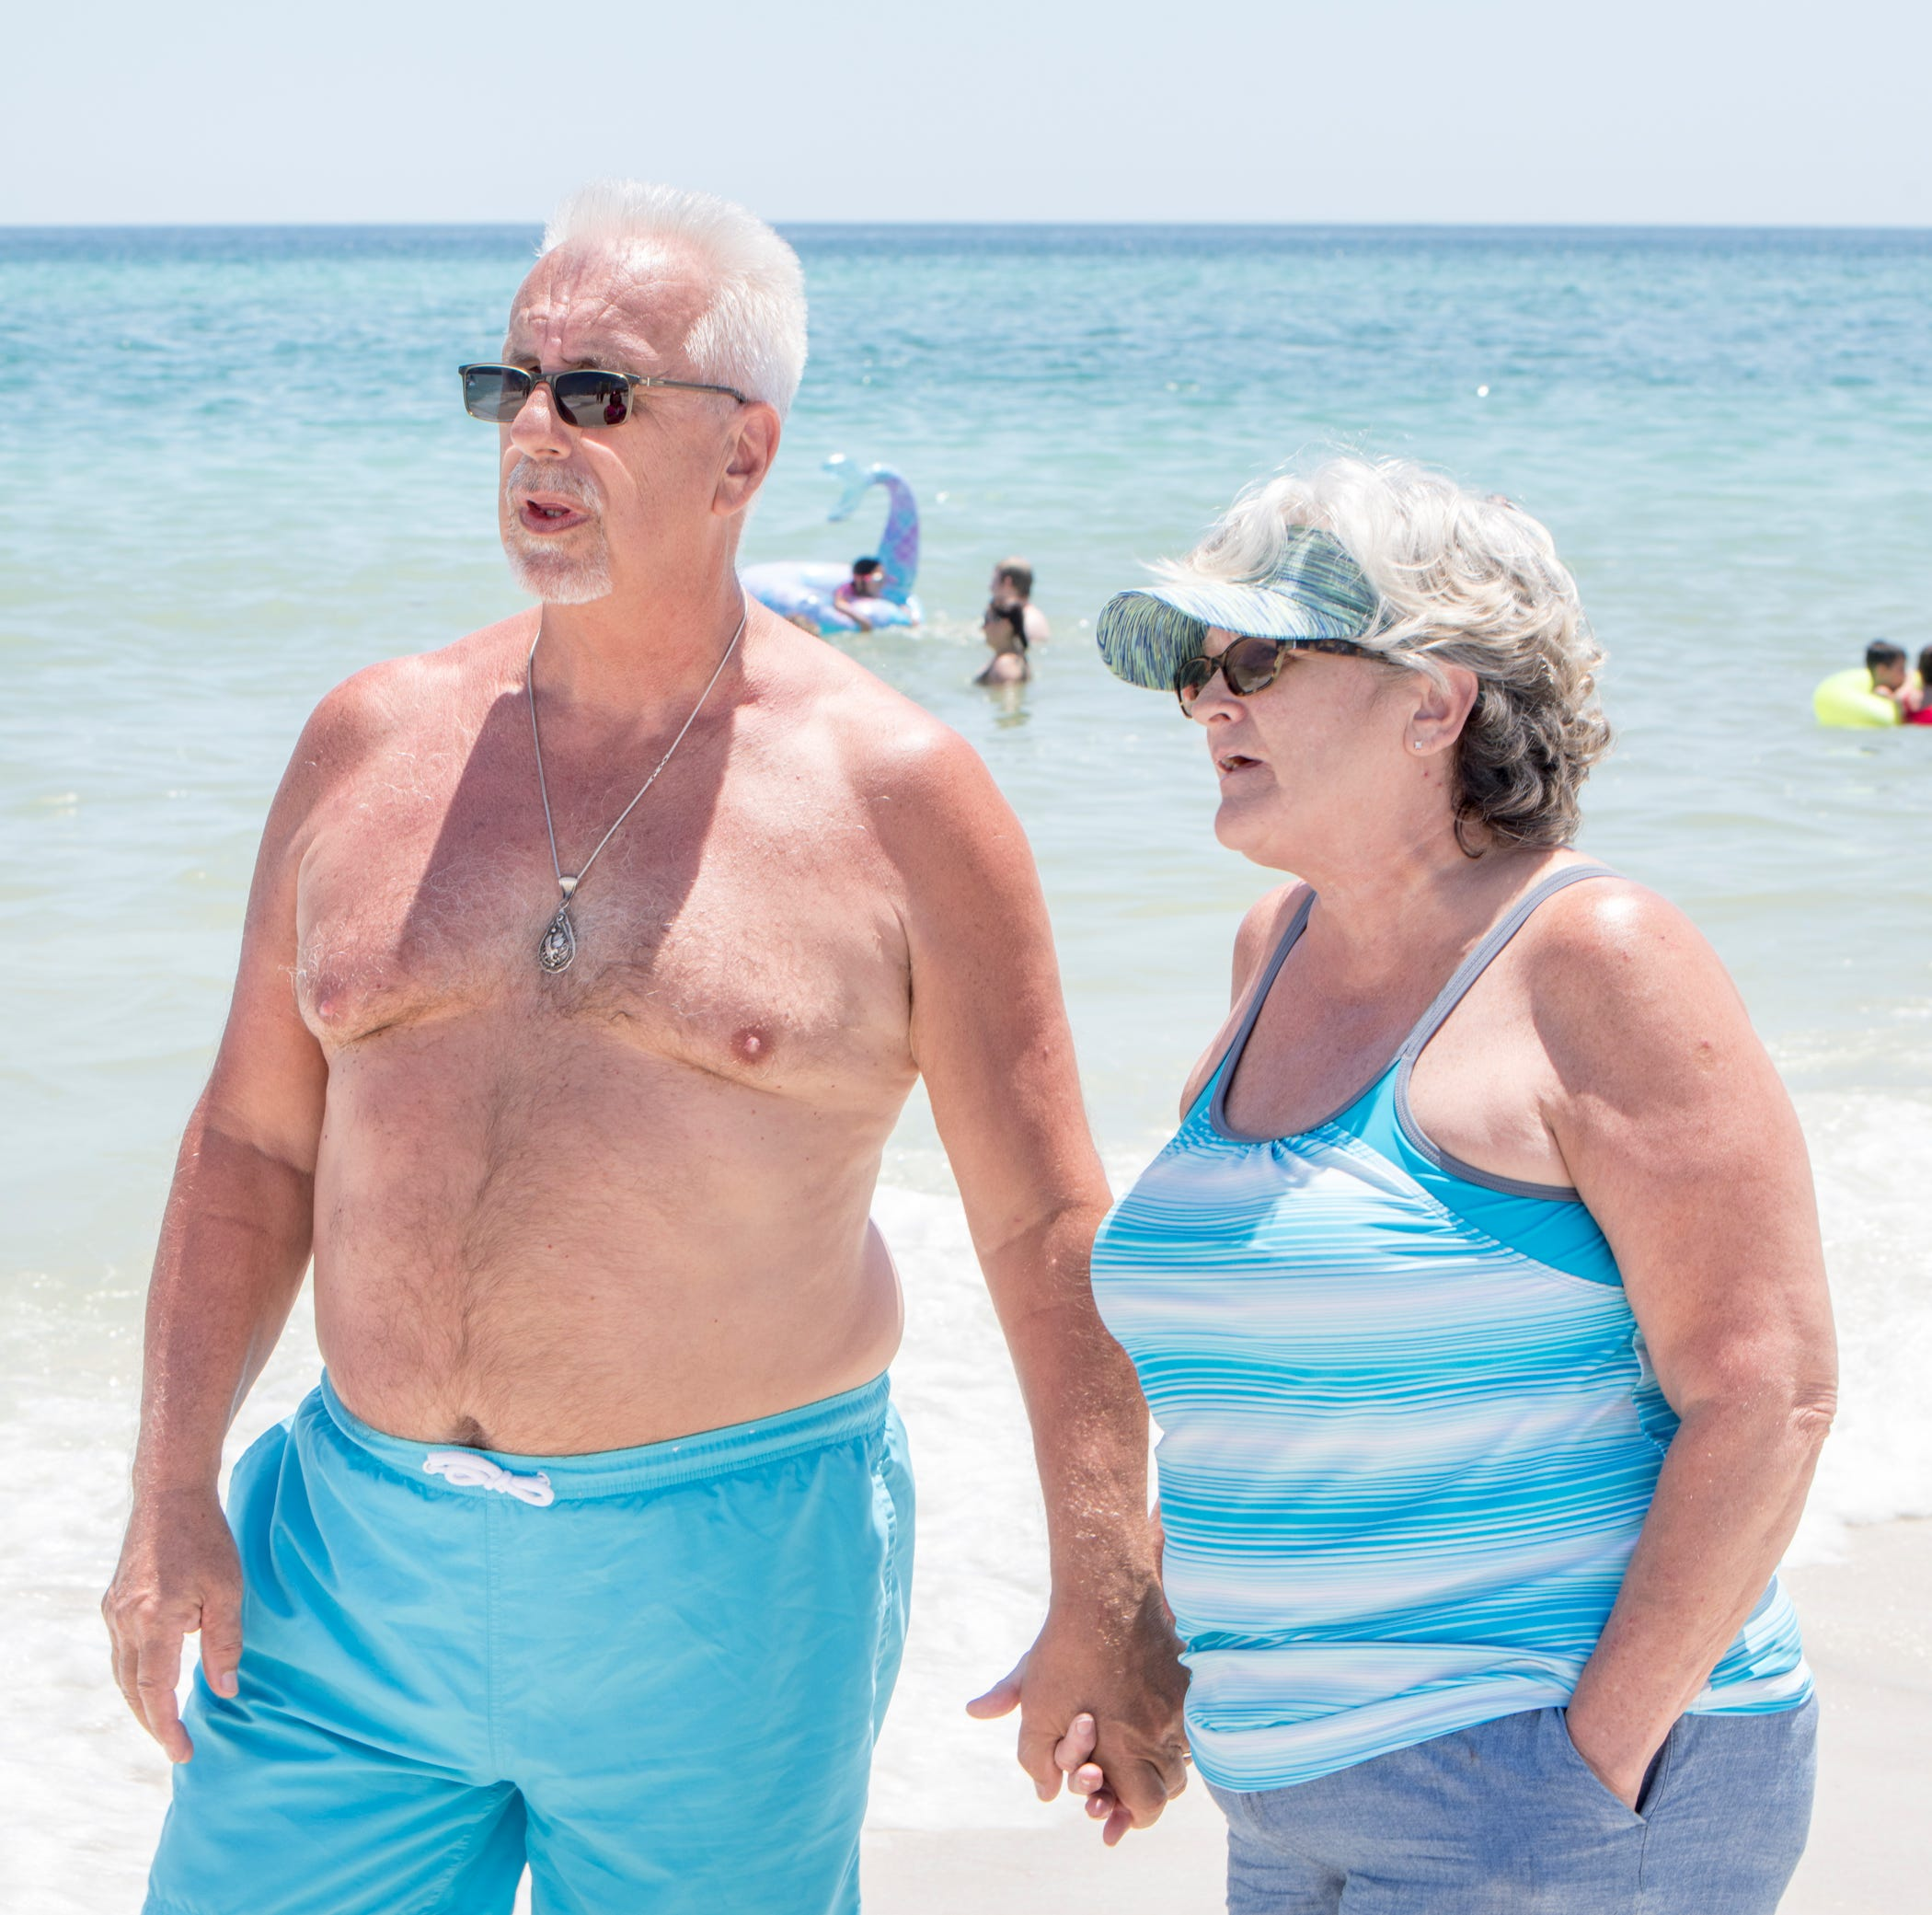 Pensacola Beach marketing 101: Don't show older visitors in ads